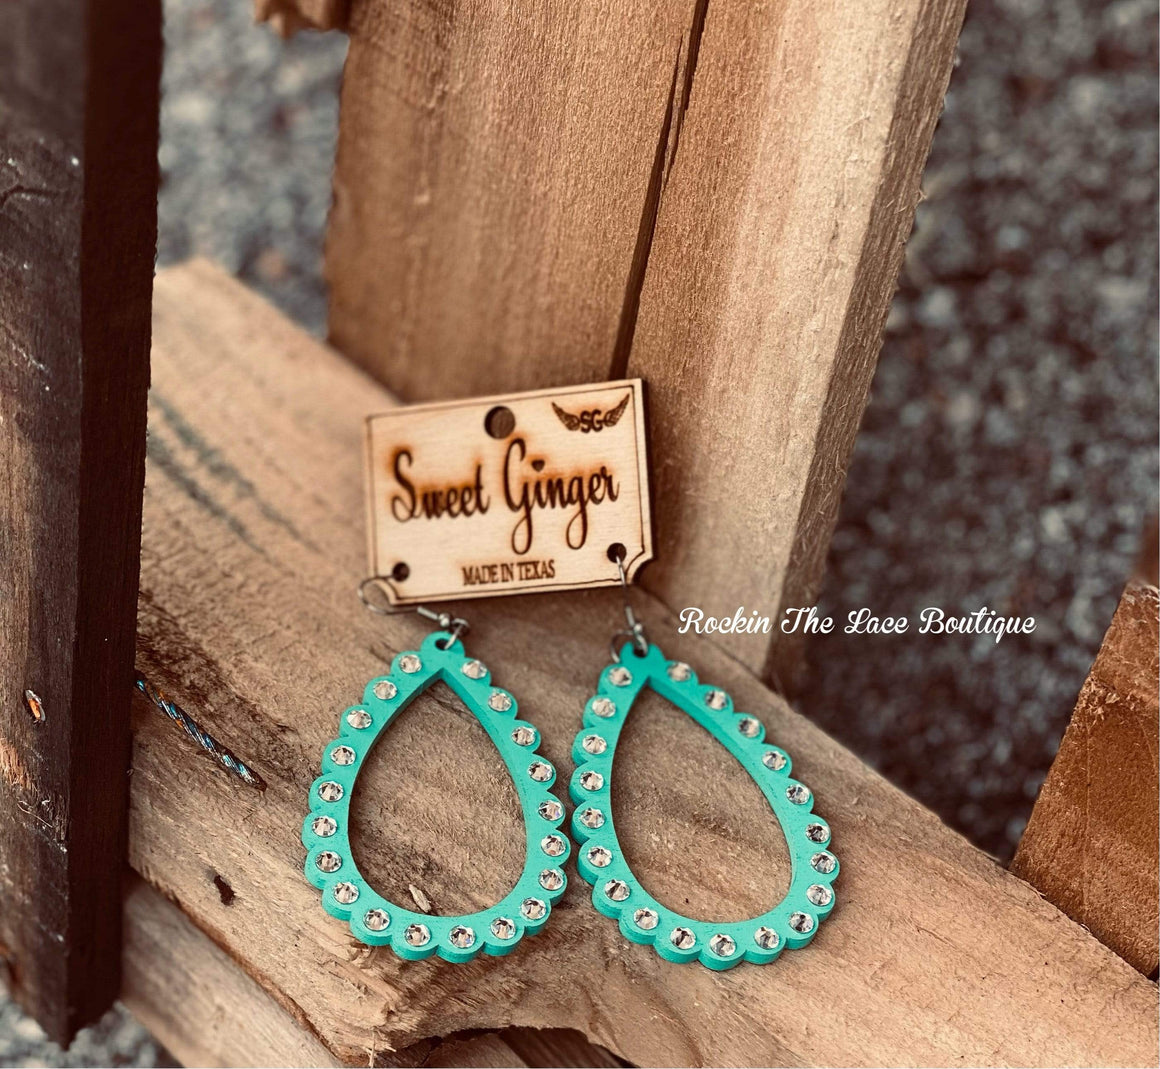 Turquoise Loops - Sweet Ginger Jewelry Rockin The Lace Boutique